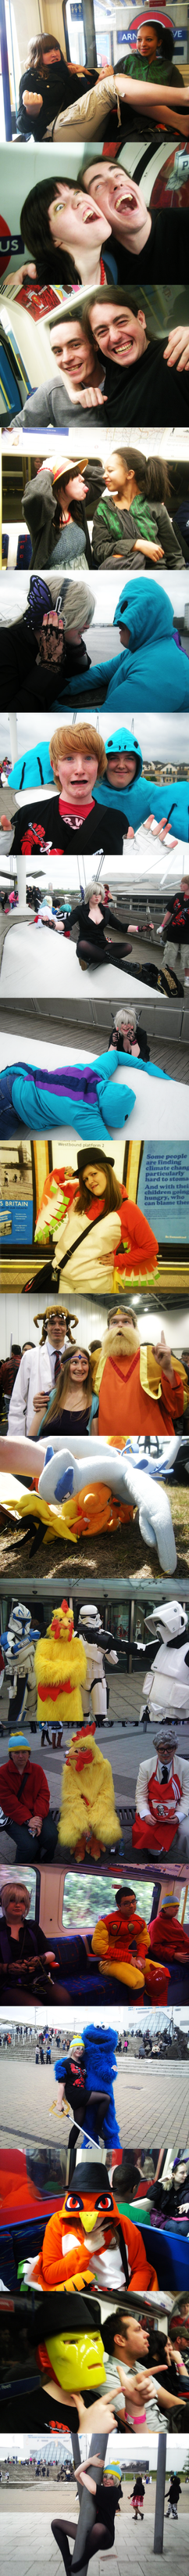 a few funny expo pics by inasaku